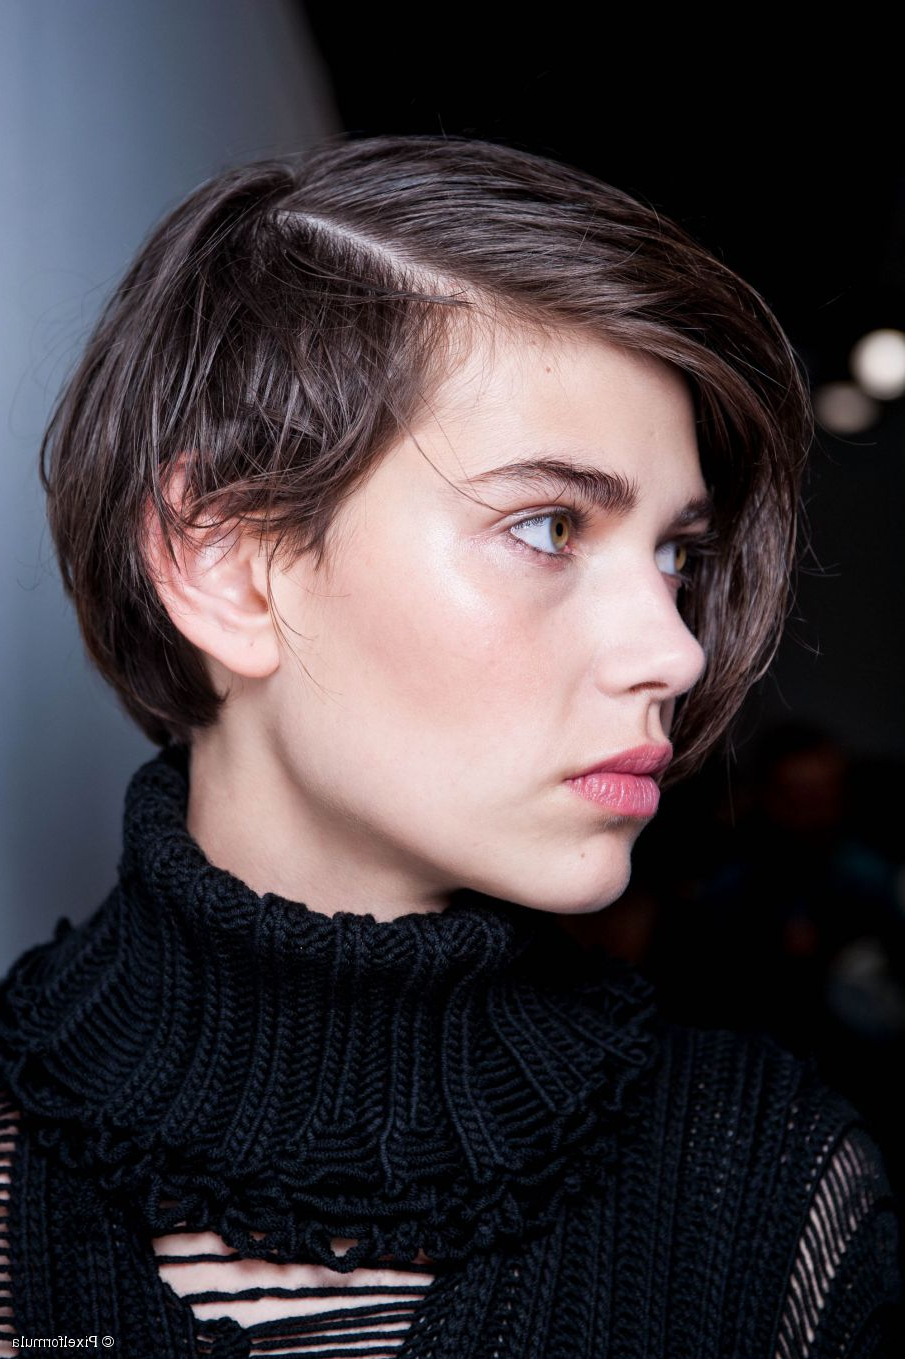 Sleek, Short Hair Tutorial: Try A Deep Side Part Regarding Short Haircuts With Side Part (View 2 of 20)